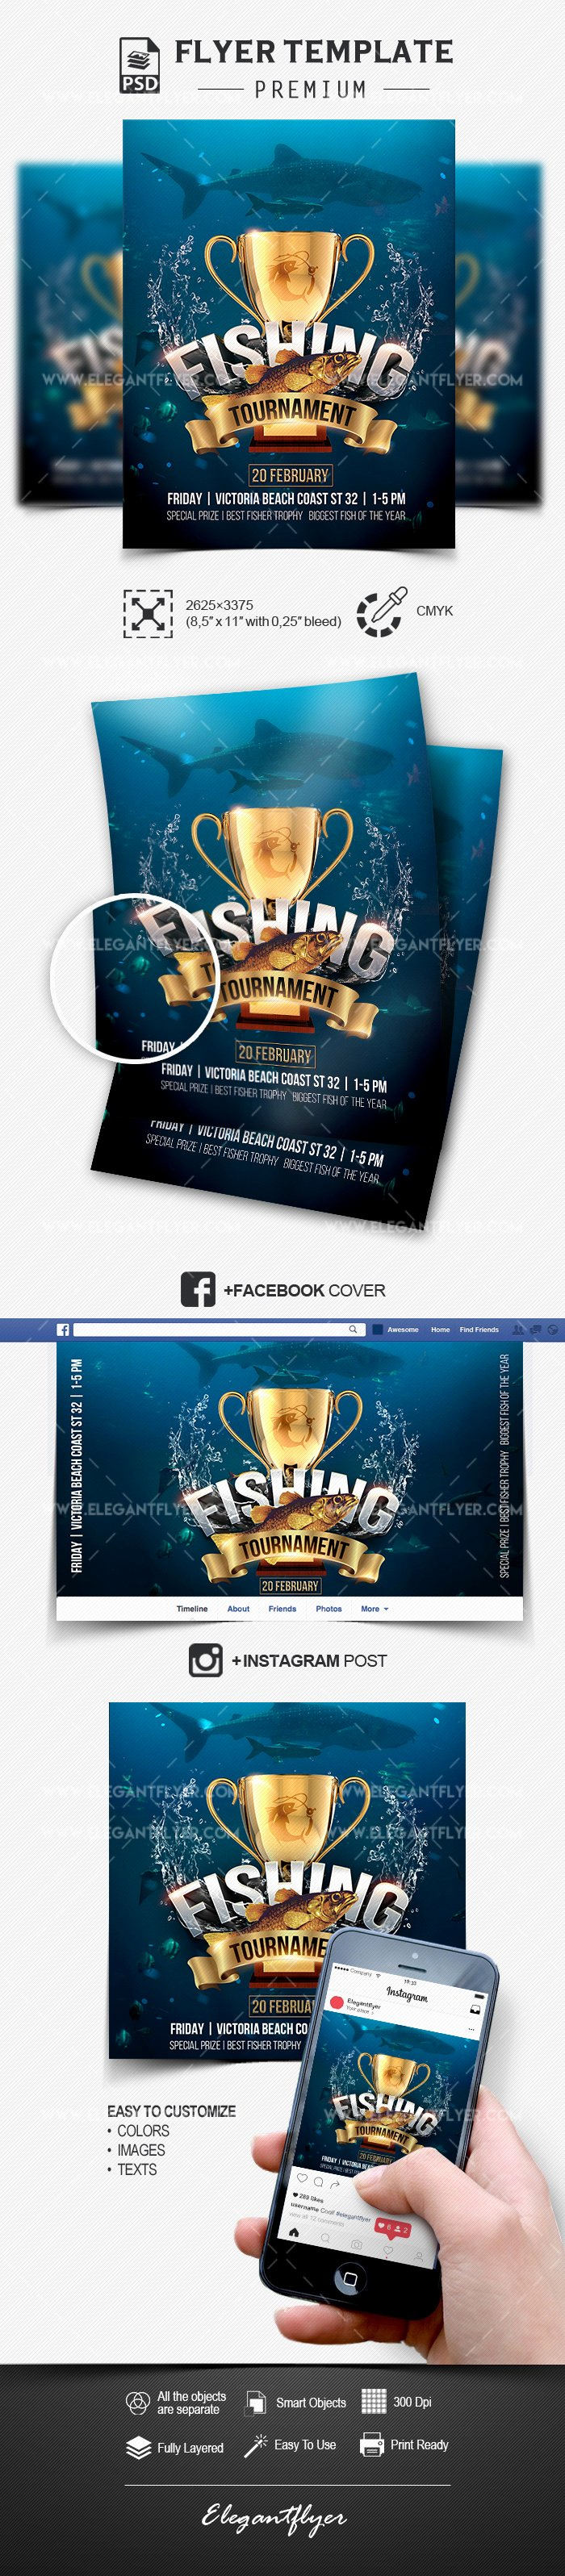 fishing tournament psd flyer template cover instagram post